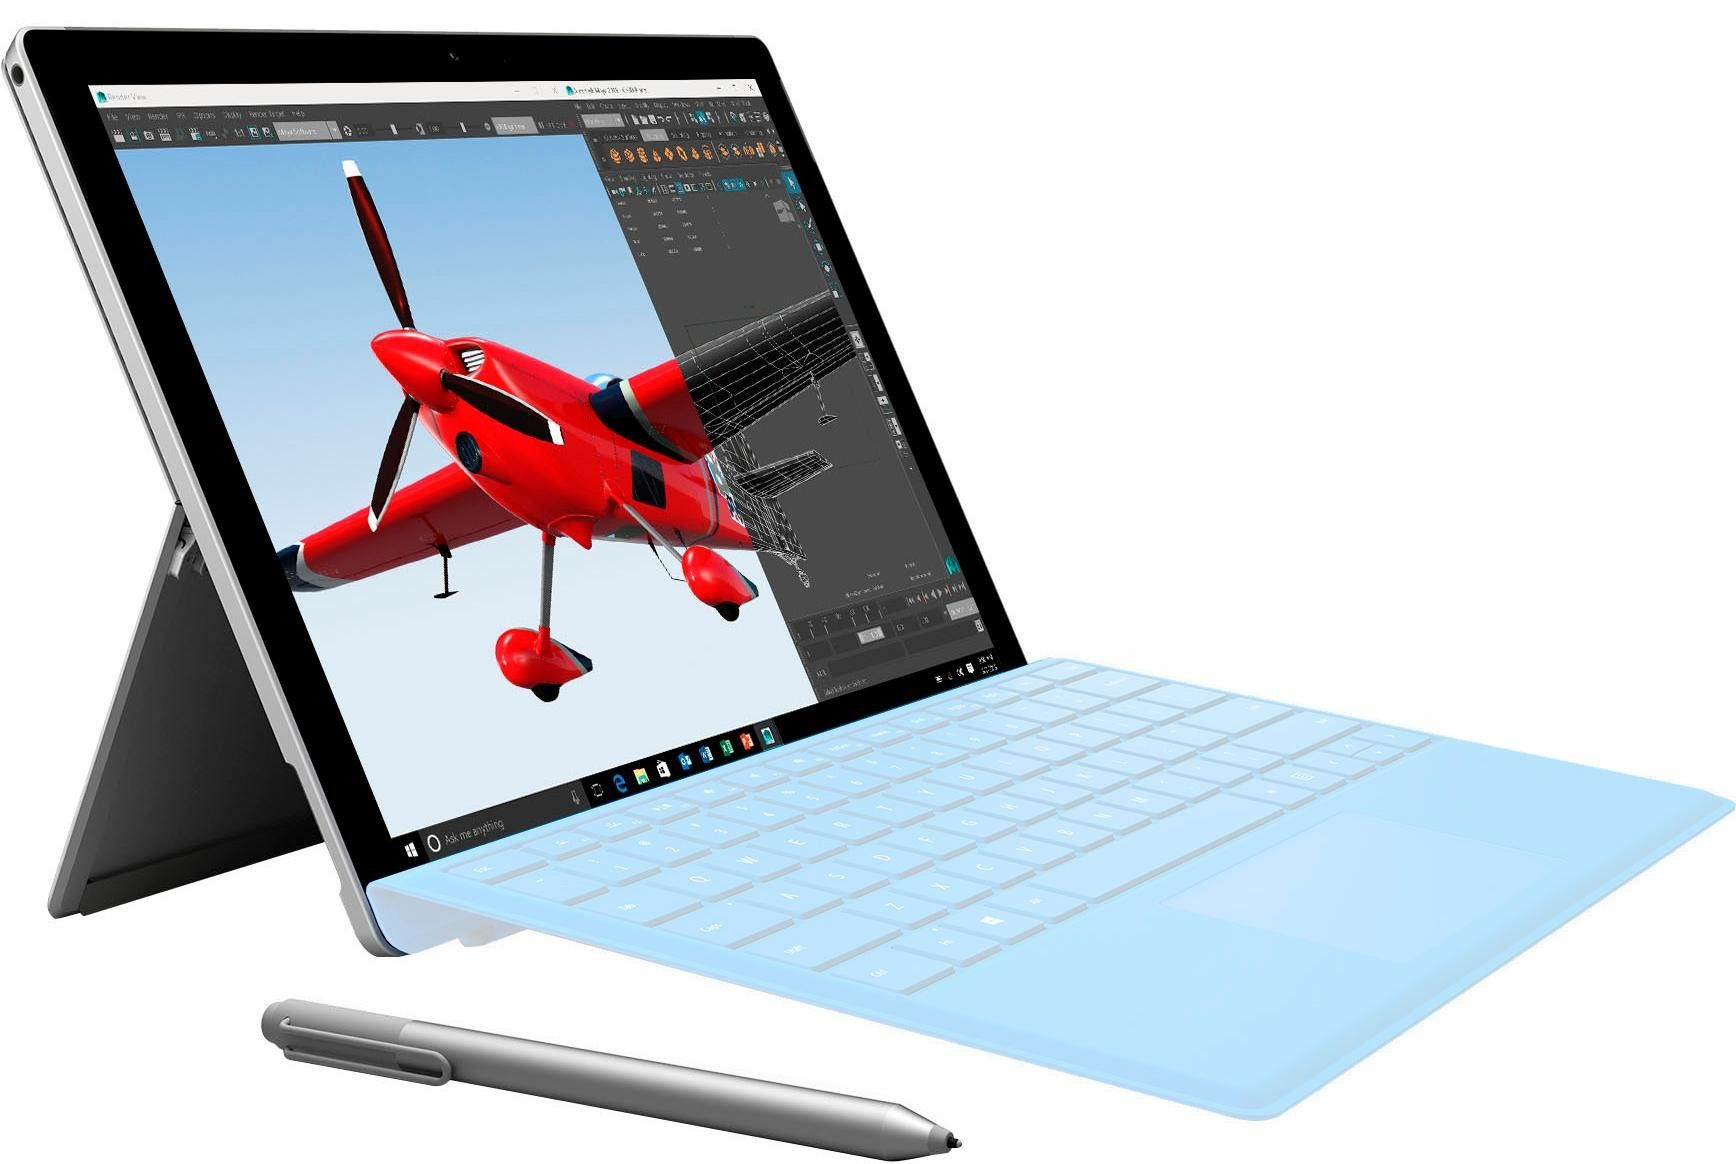 Microsoft Surface Pro 4 CR5-00003 Tablet-PC, Microsoft® Windows® 10 Pro, Intel Core i5